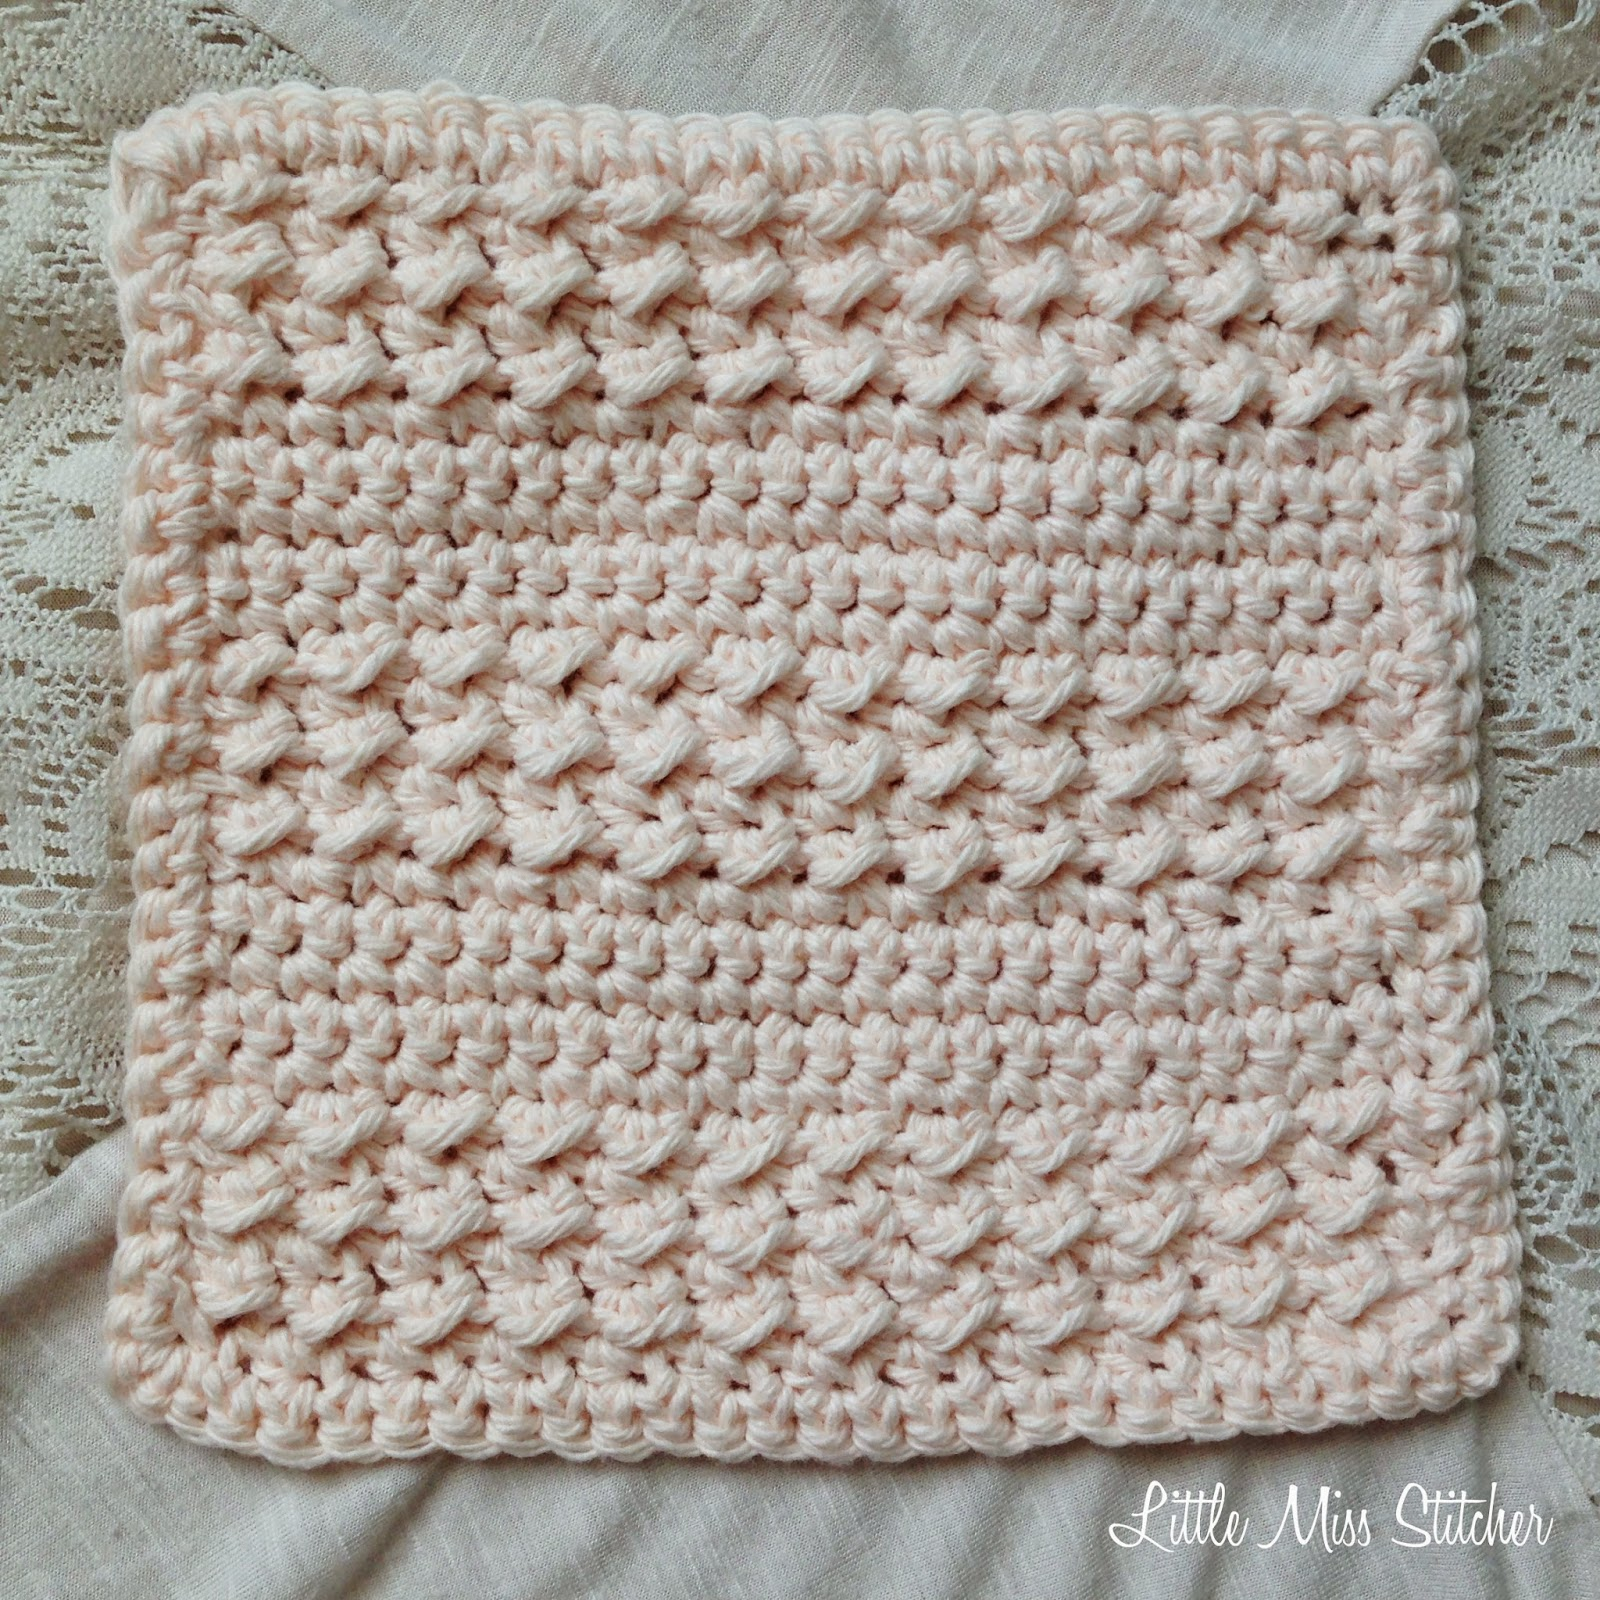 Crochet Patterns Dishcloths Free : ... something so theraputic about crocheting dishcloths, dont you think